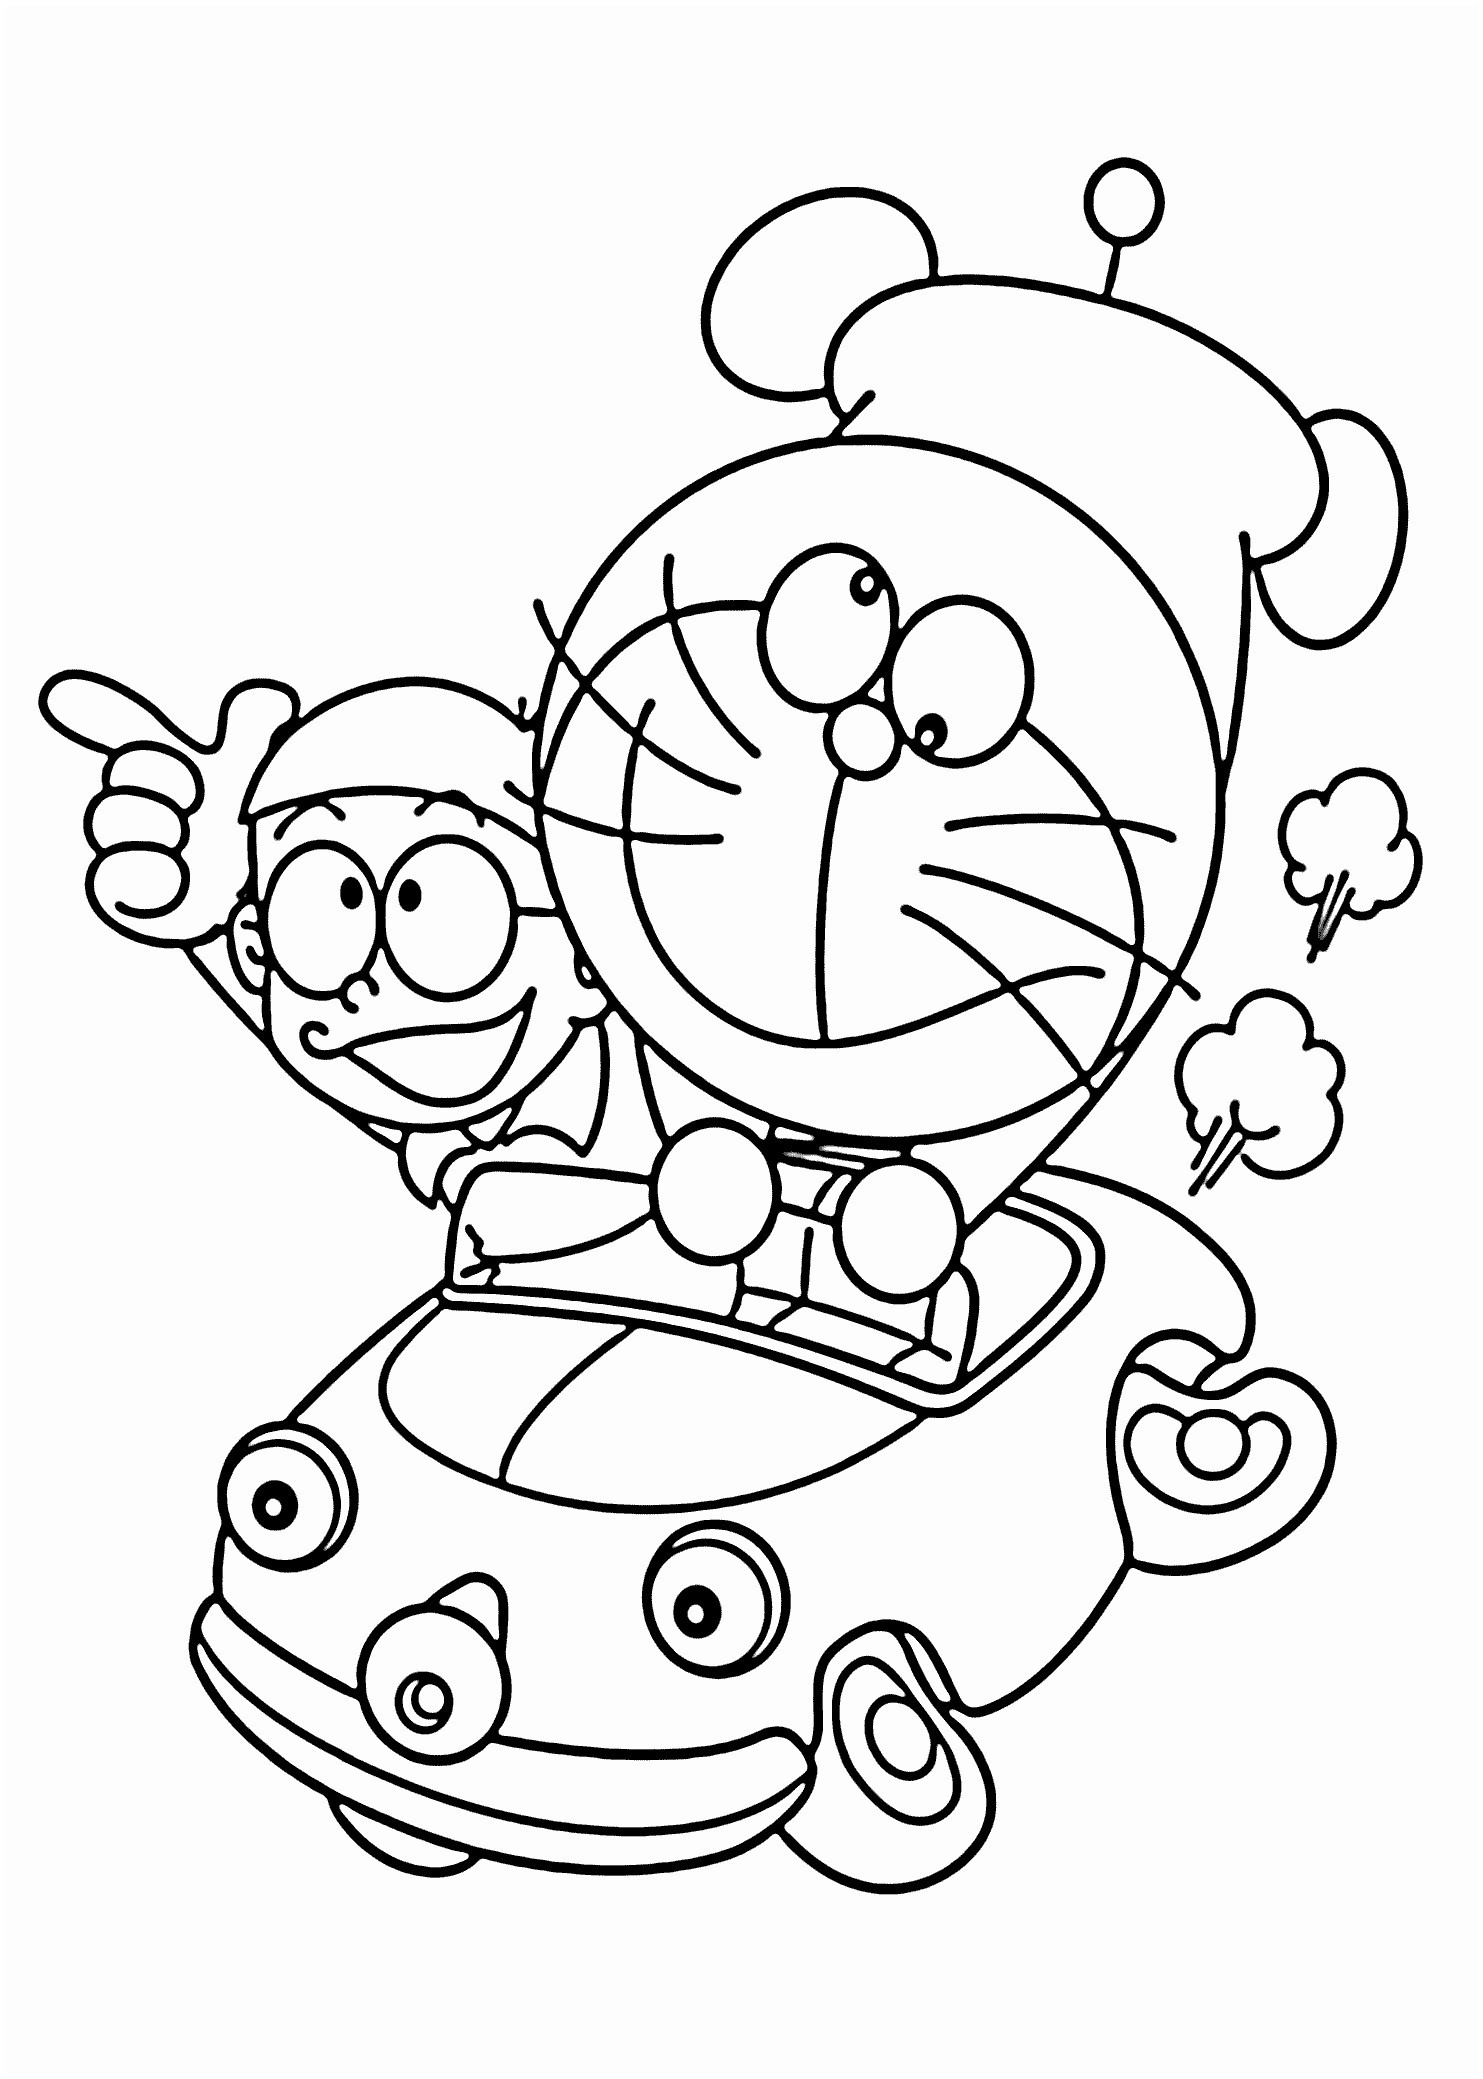 Coloring Pages In Color  Download 18q - Free Download